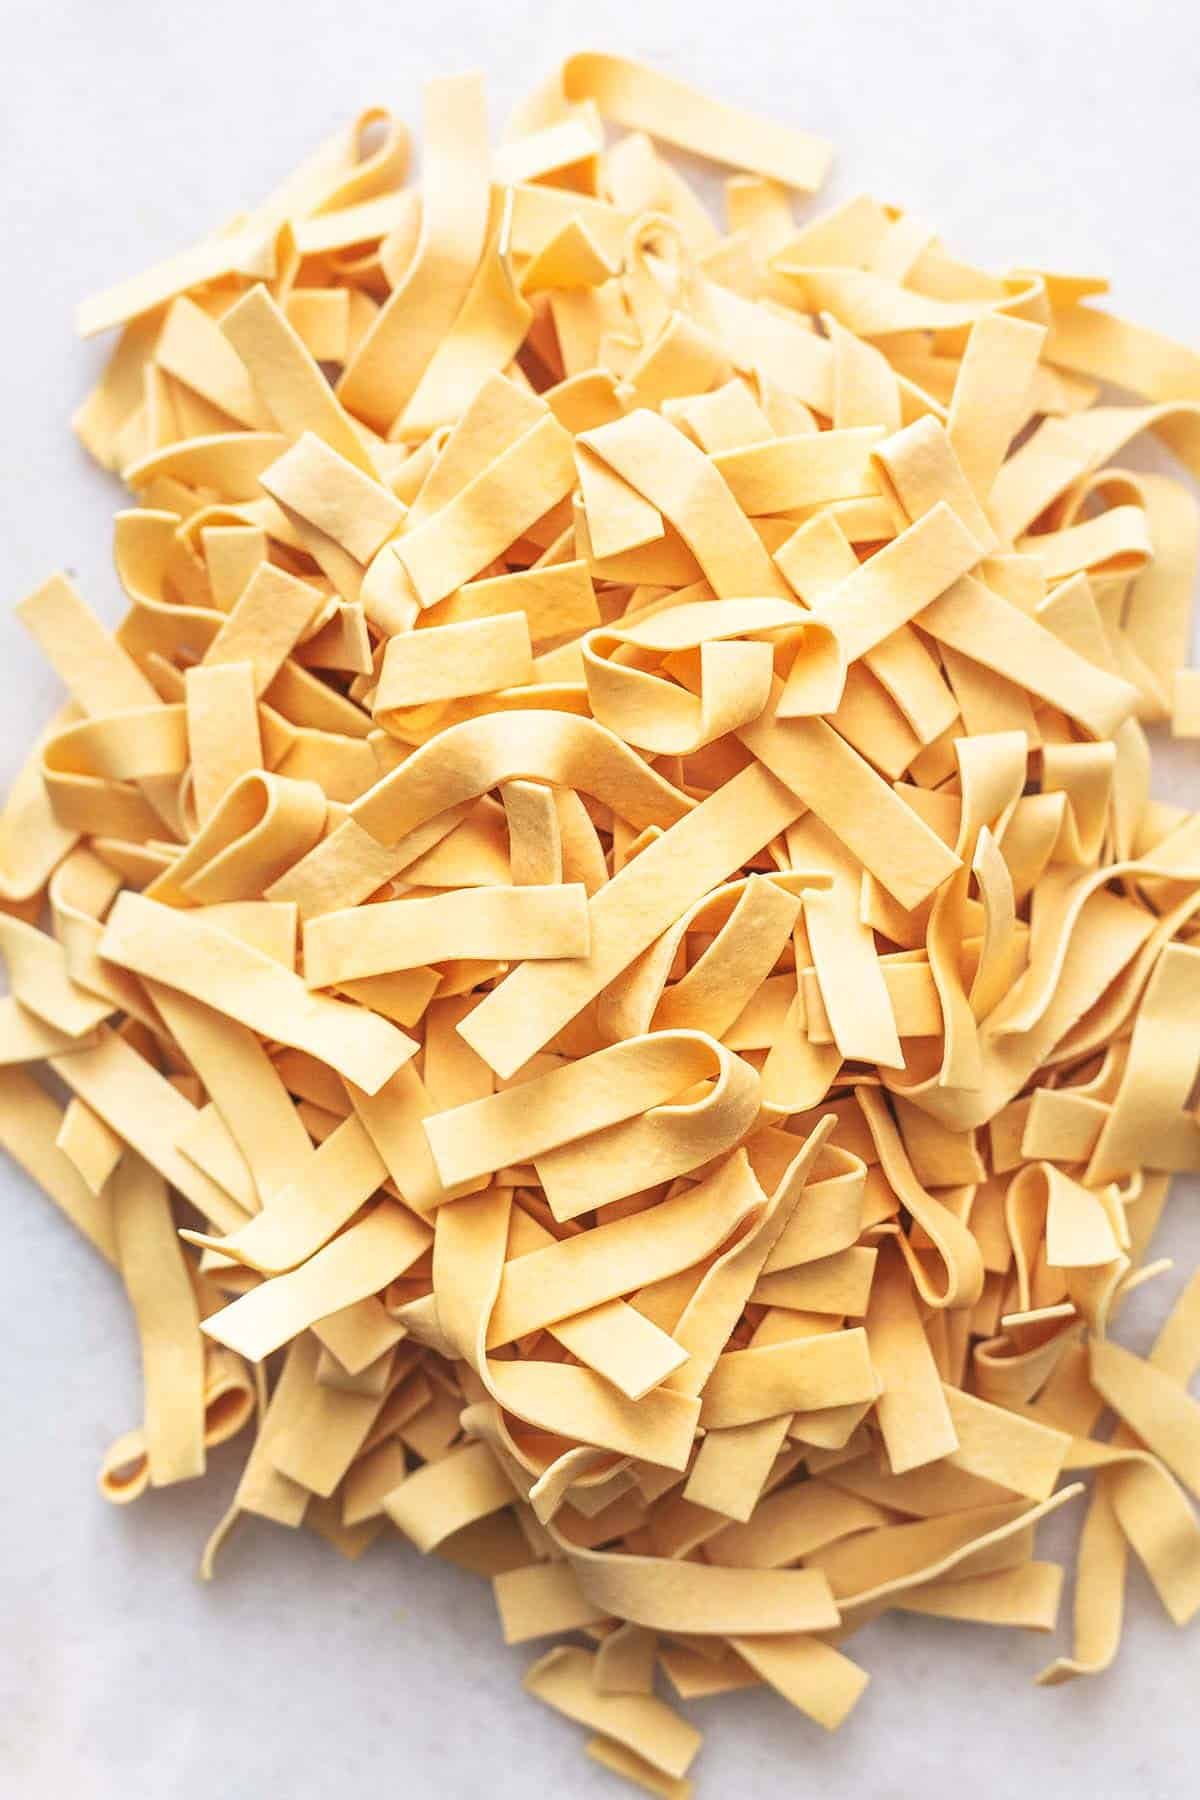 dry egg noodles in a pile on marble tabletop